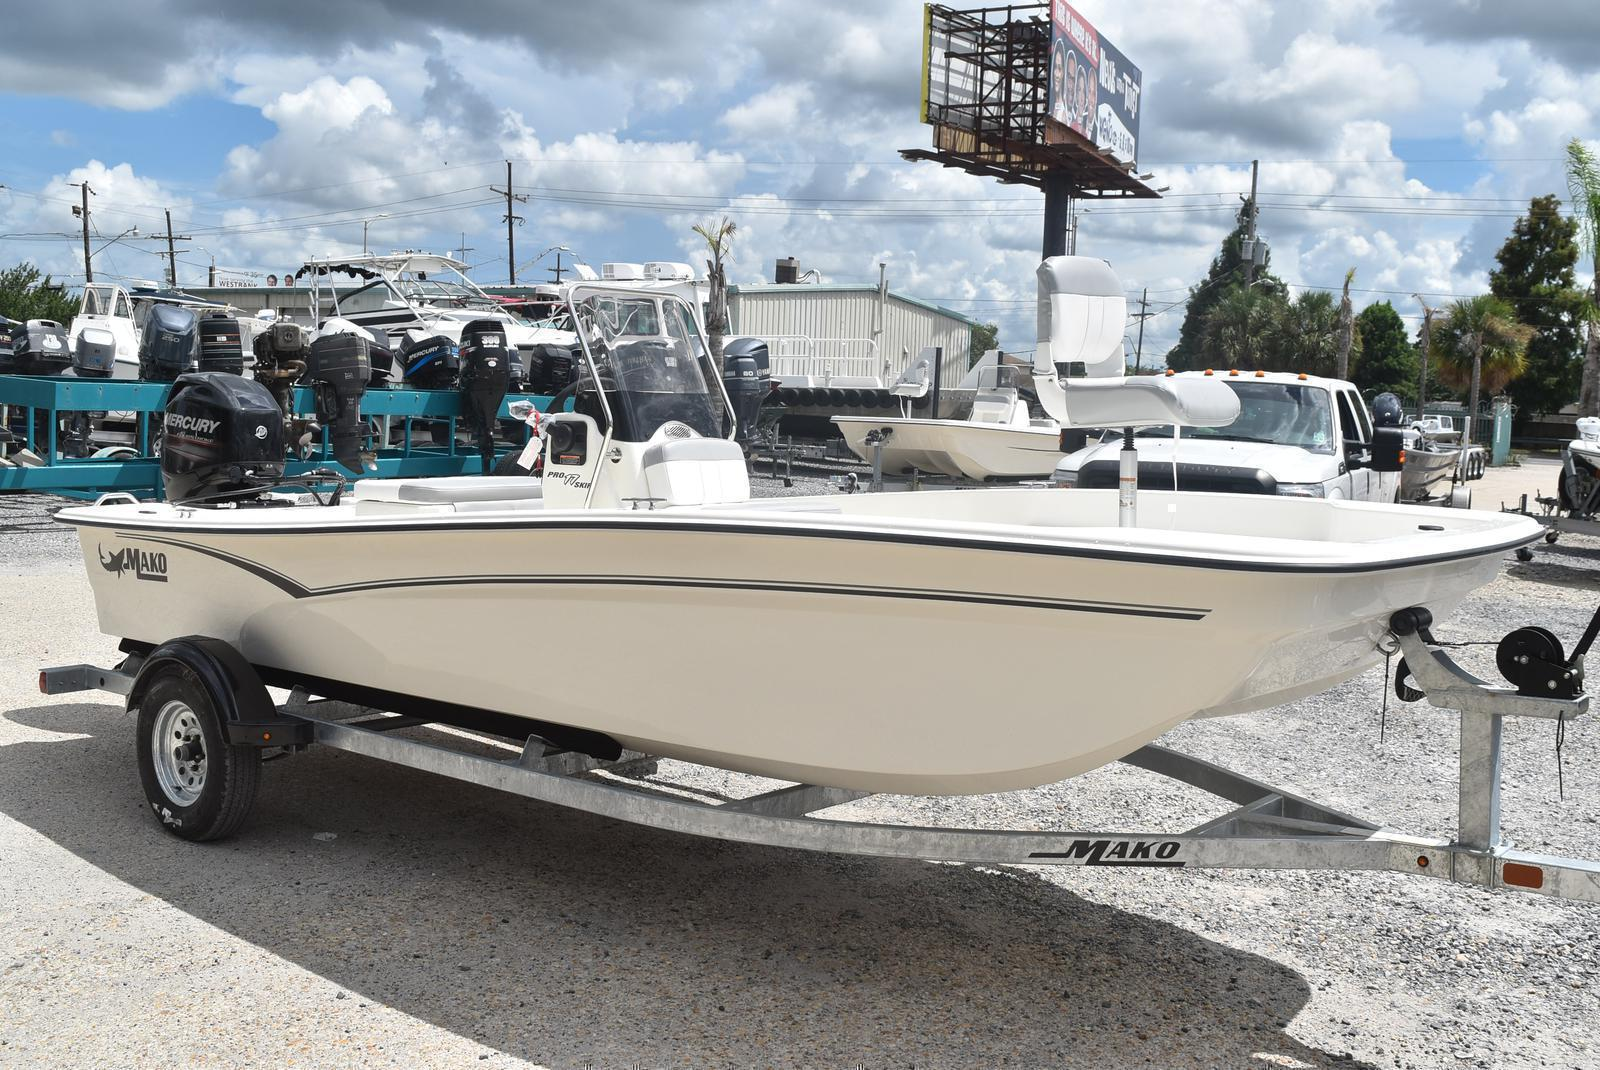 2020 Mako boat for sale, model of the boat is Pro Skiff 17, 75 ELPT & Image # 629 of 702